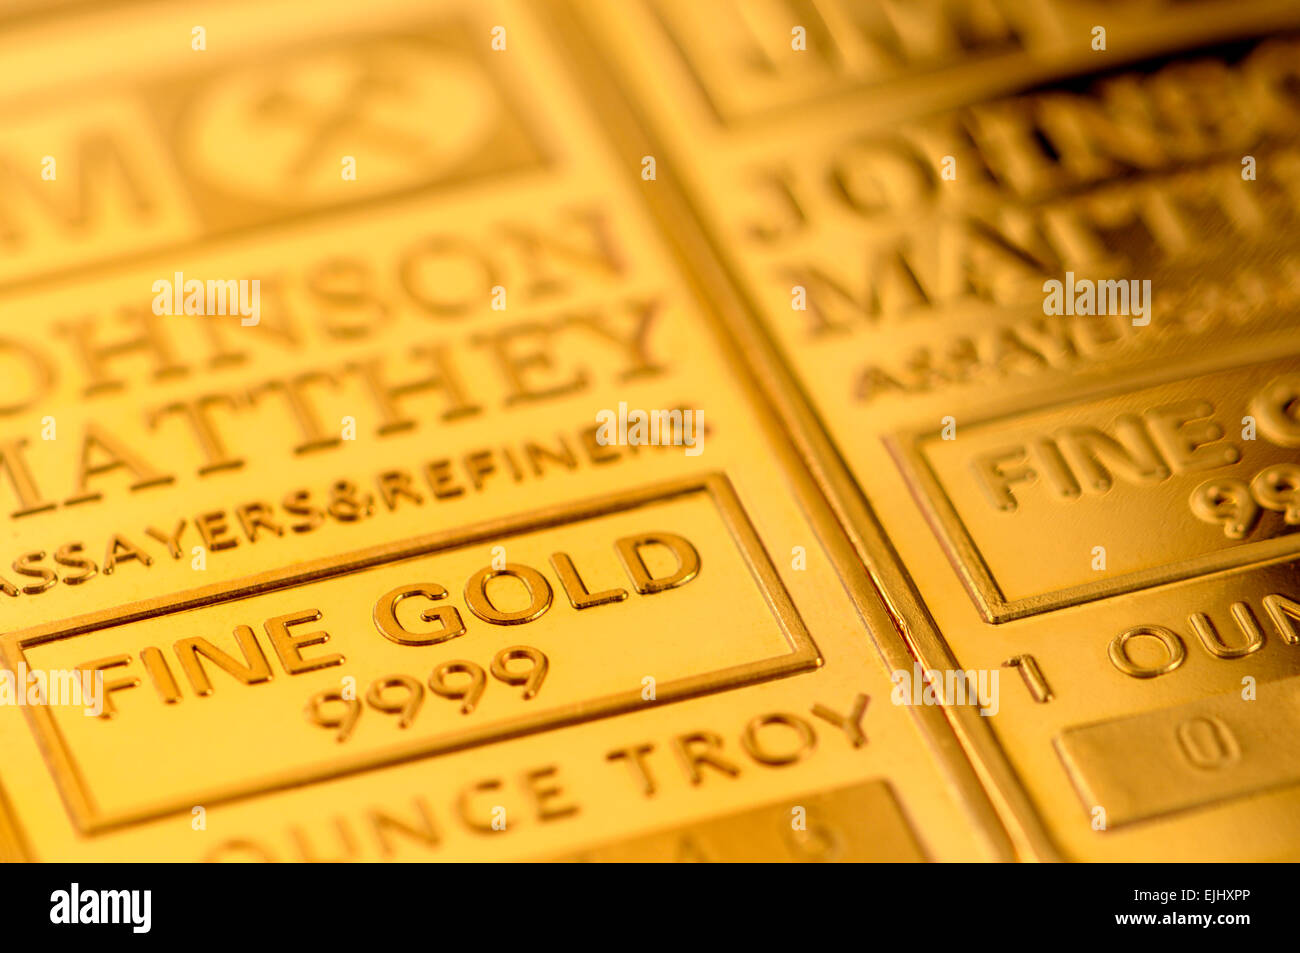 Gold bullion ingots (gold-plated replicas) - Stock Image